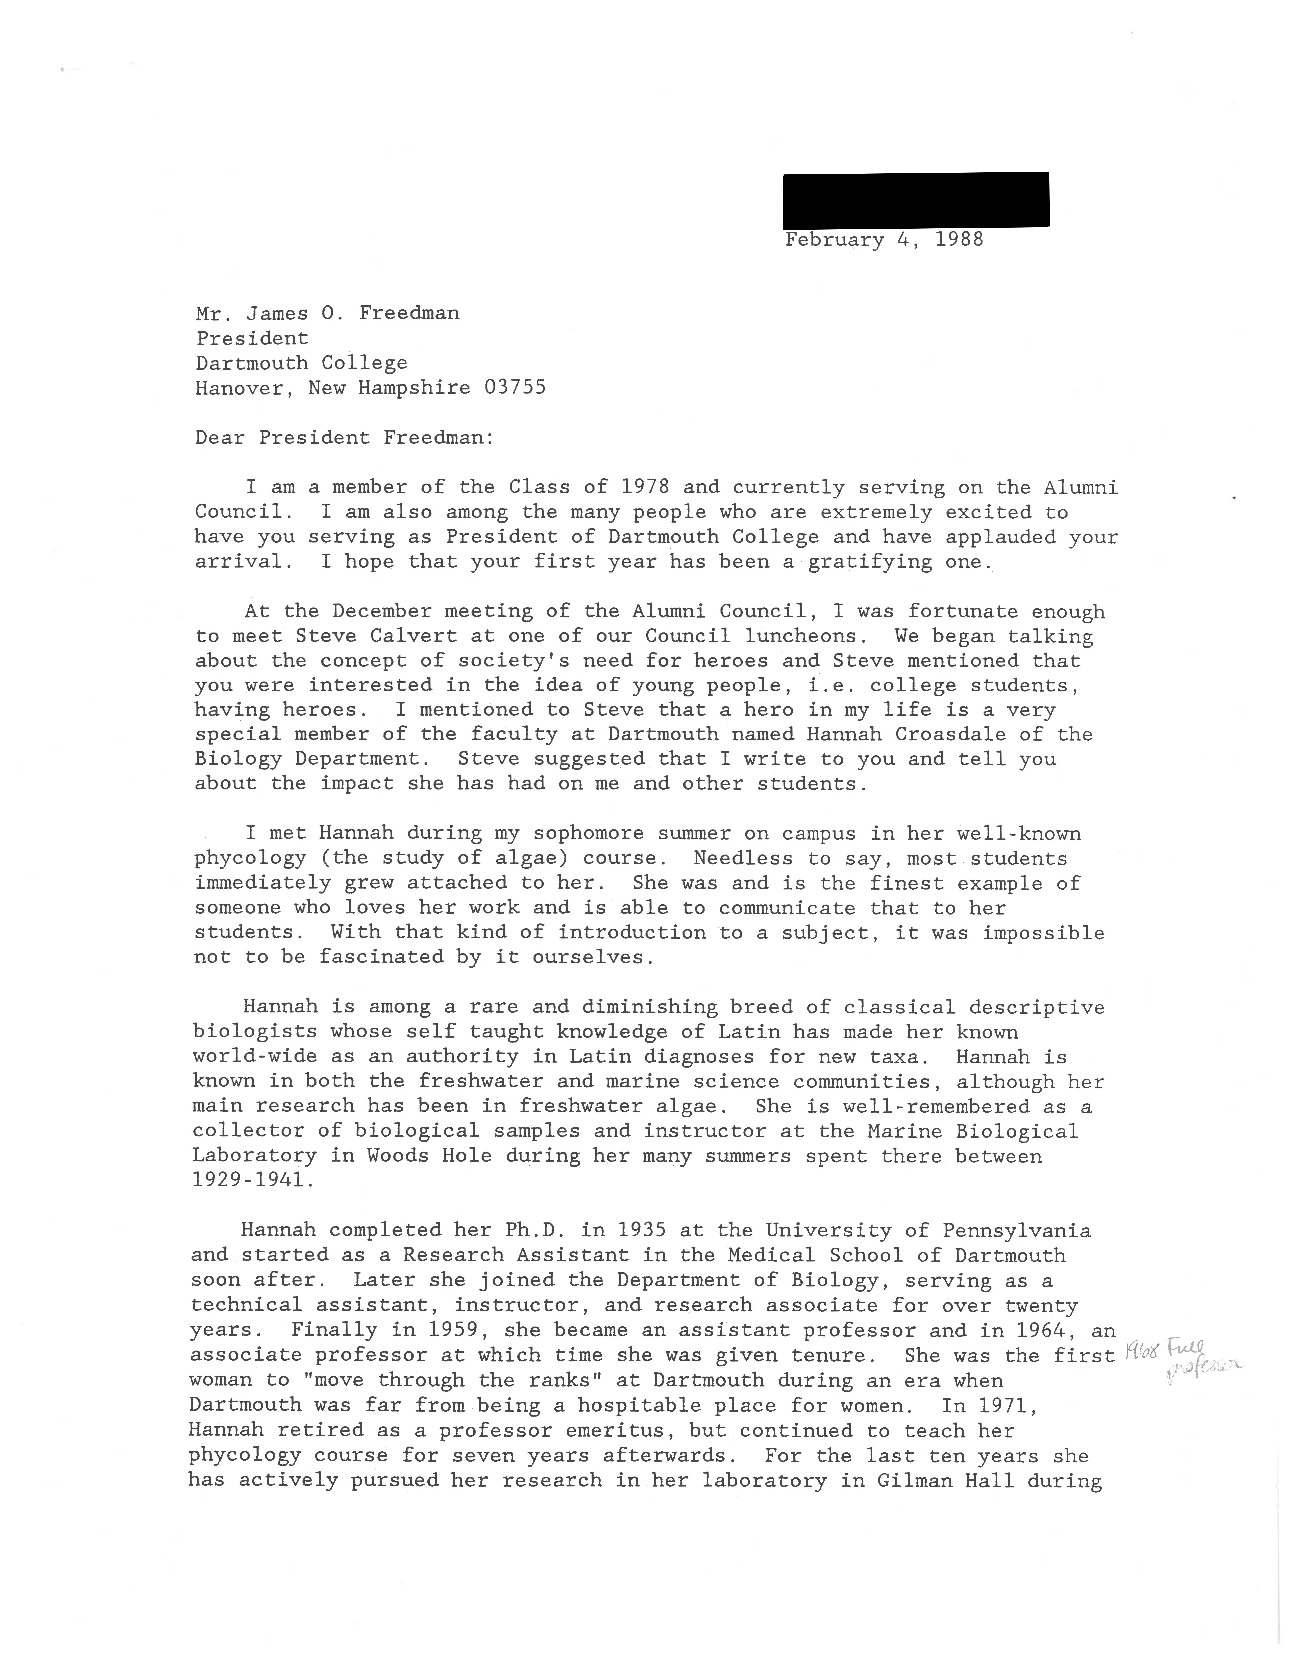 """Celia Chen '78 writes to President Freedman at the suggestion of a member of the Alumni Council regarding his interest in the idea of young people having heroes. Chen explains that Dartmouth professor Hannah Croasdale is her personal hero, describing her as """"the finest example of someone who loves her work and is able to communicate that to her students."""" Chen is currently a Research Professor in the Dartmouth College Department of Biological Sciences."""